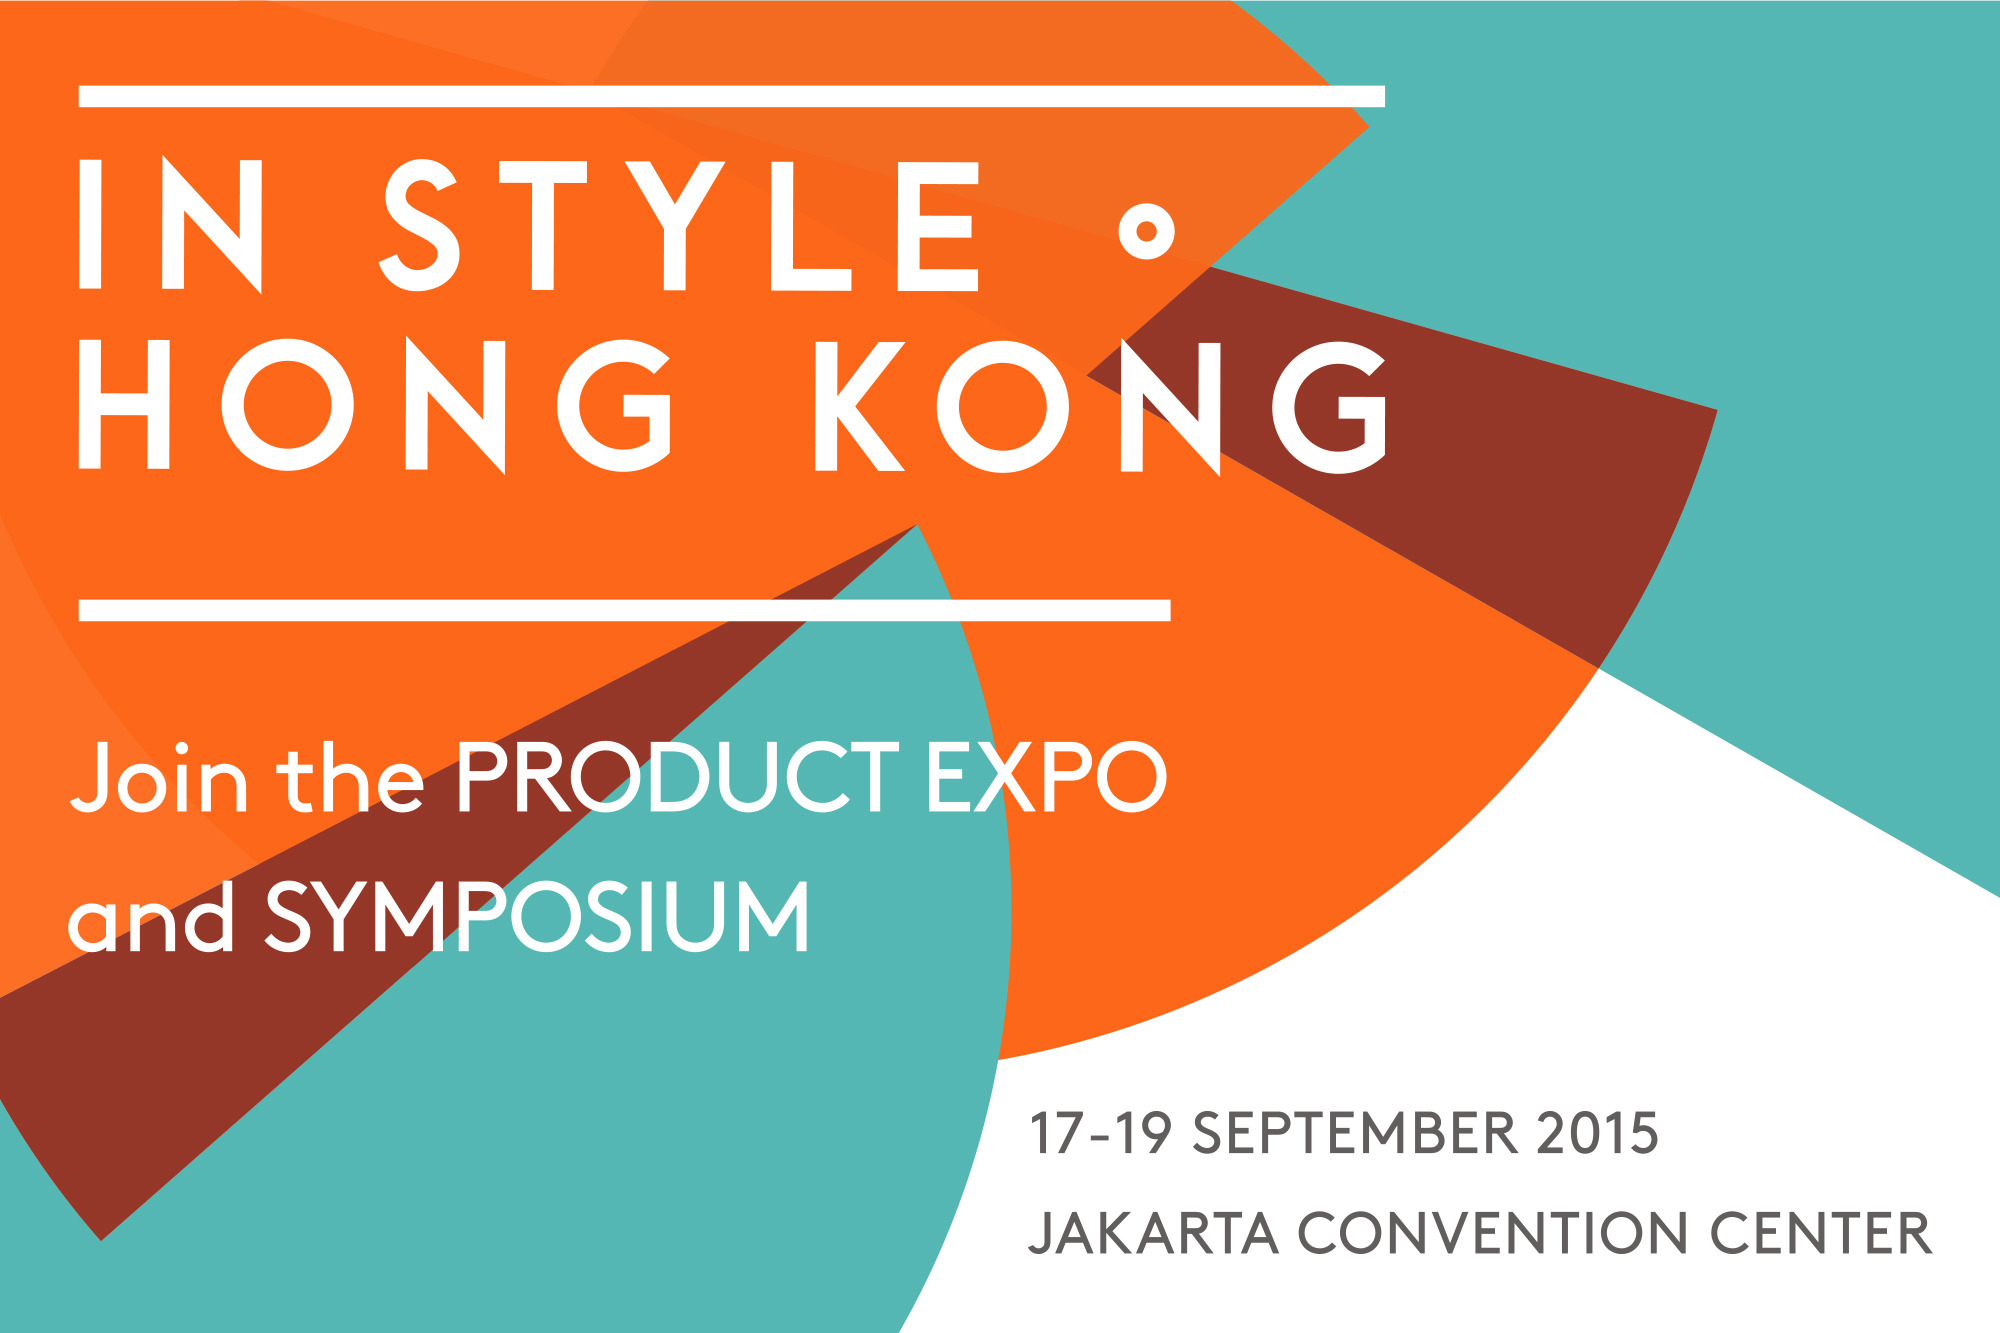 In Style Hong Kong: Why The Expo in JKT is A Must-See 1